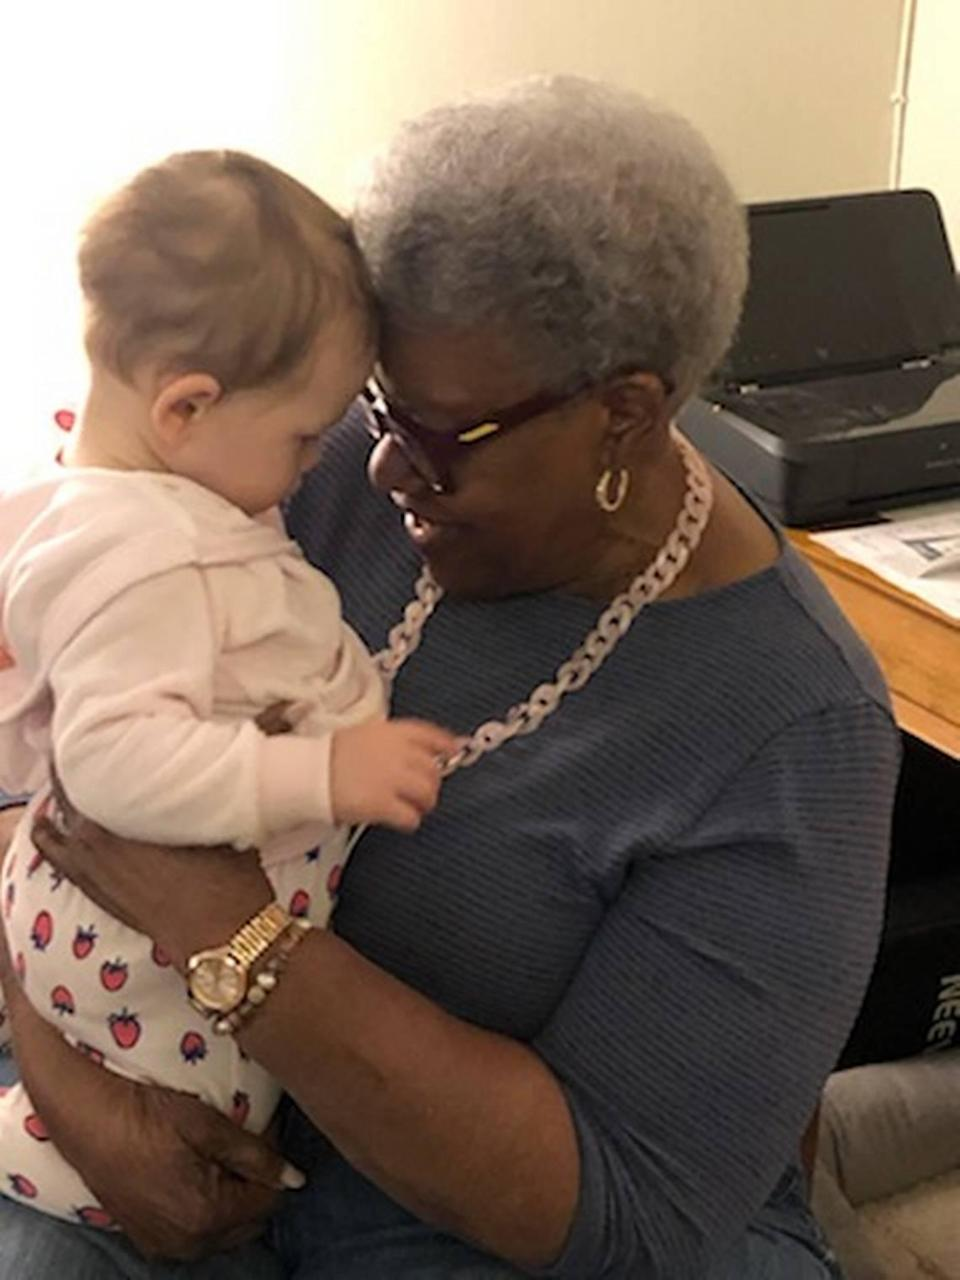 Bea Hines holding her 10-month-old great-granddaughter, Loretta Jane, for the first time on Monday, April 12, at the baby's home in New York.